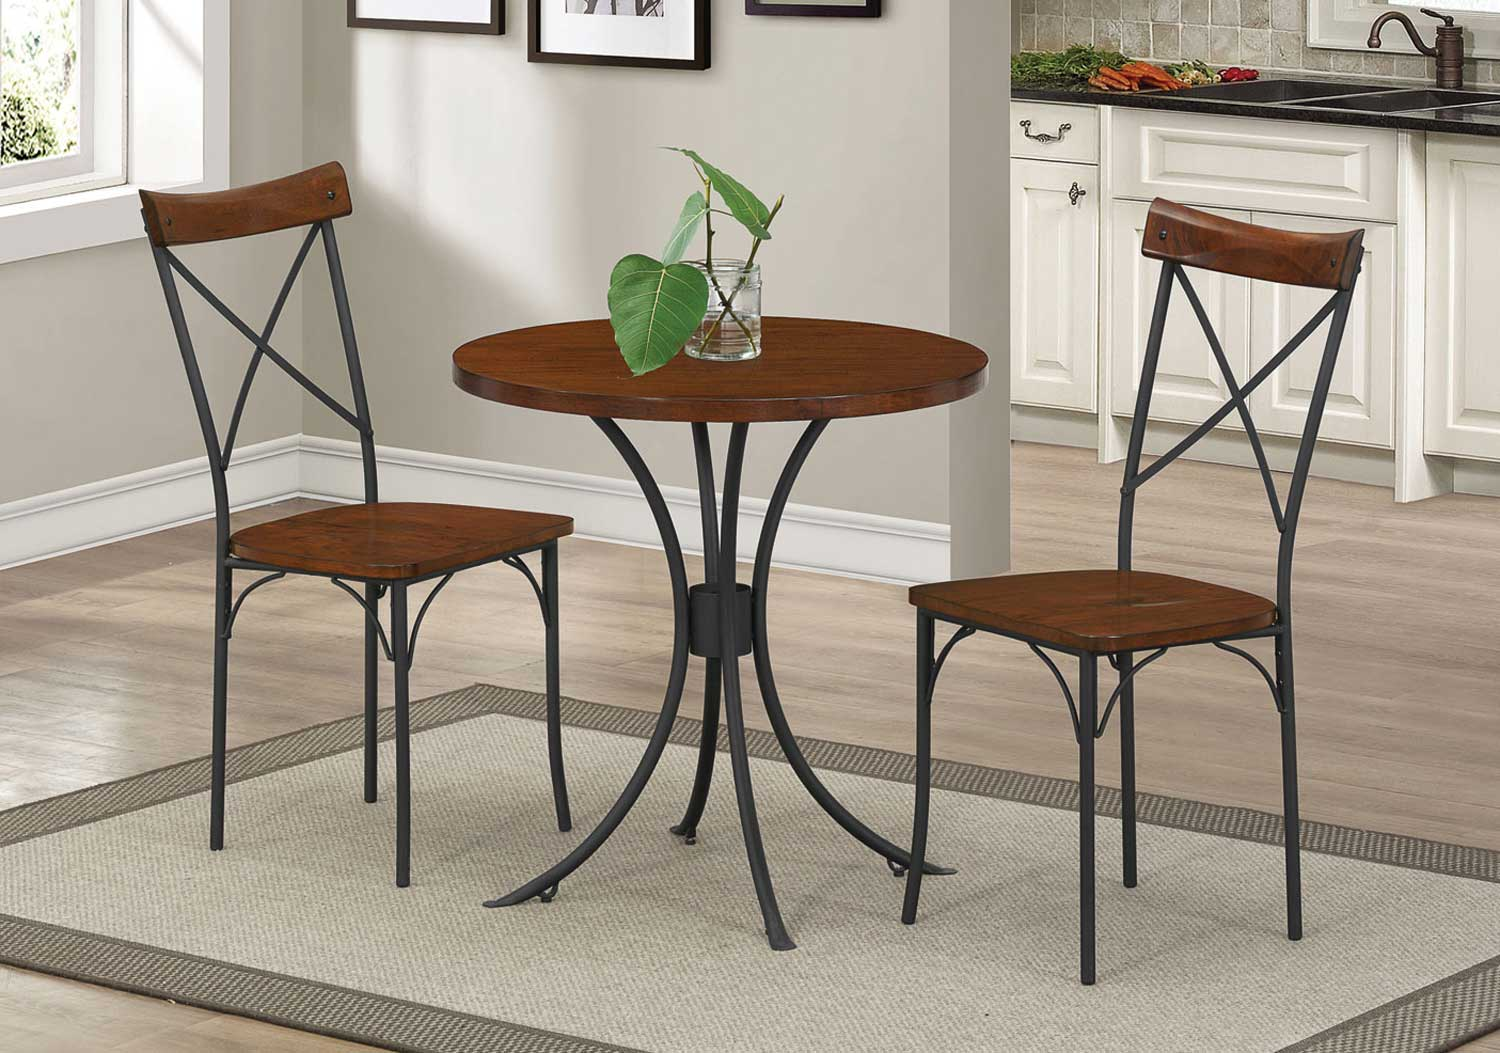 Coaster Jervis 3-Pc Round Bistro Set - Caramel Brown/Charcoal